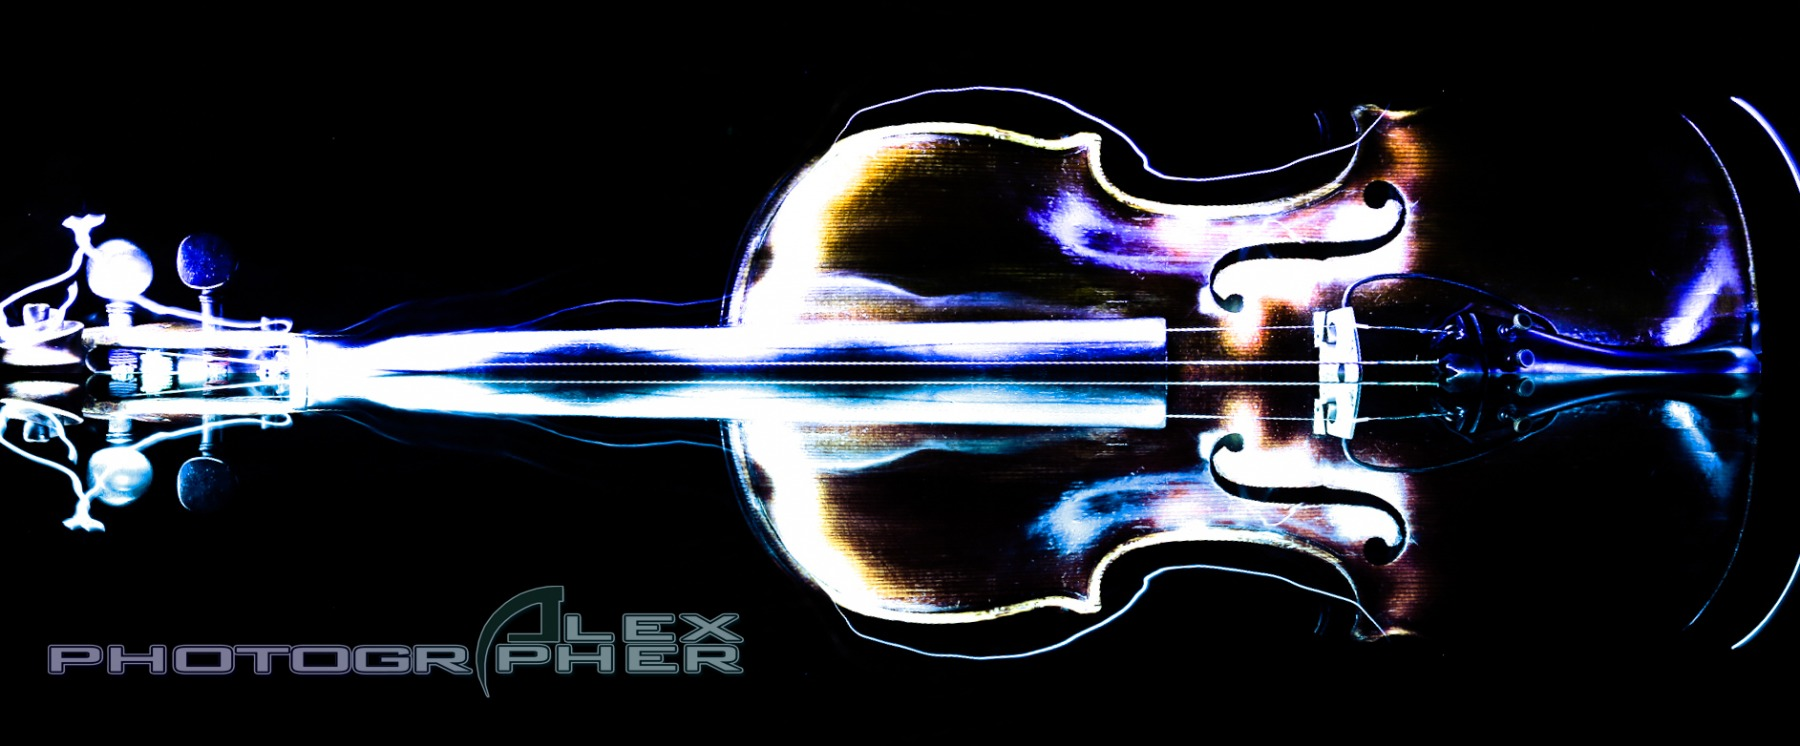 MY VIOLIN | Фотограф Alex Okhotnikoff | foto.by фото.бай